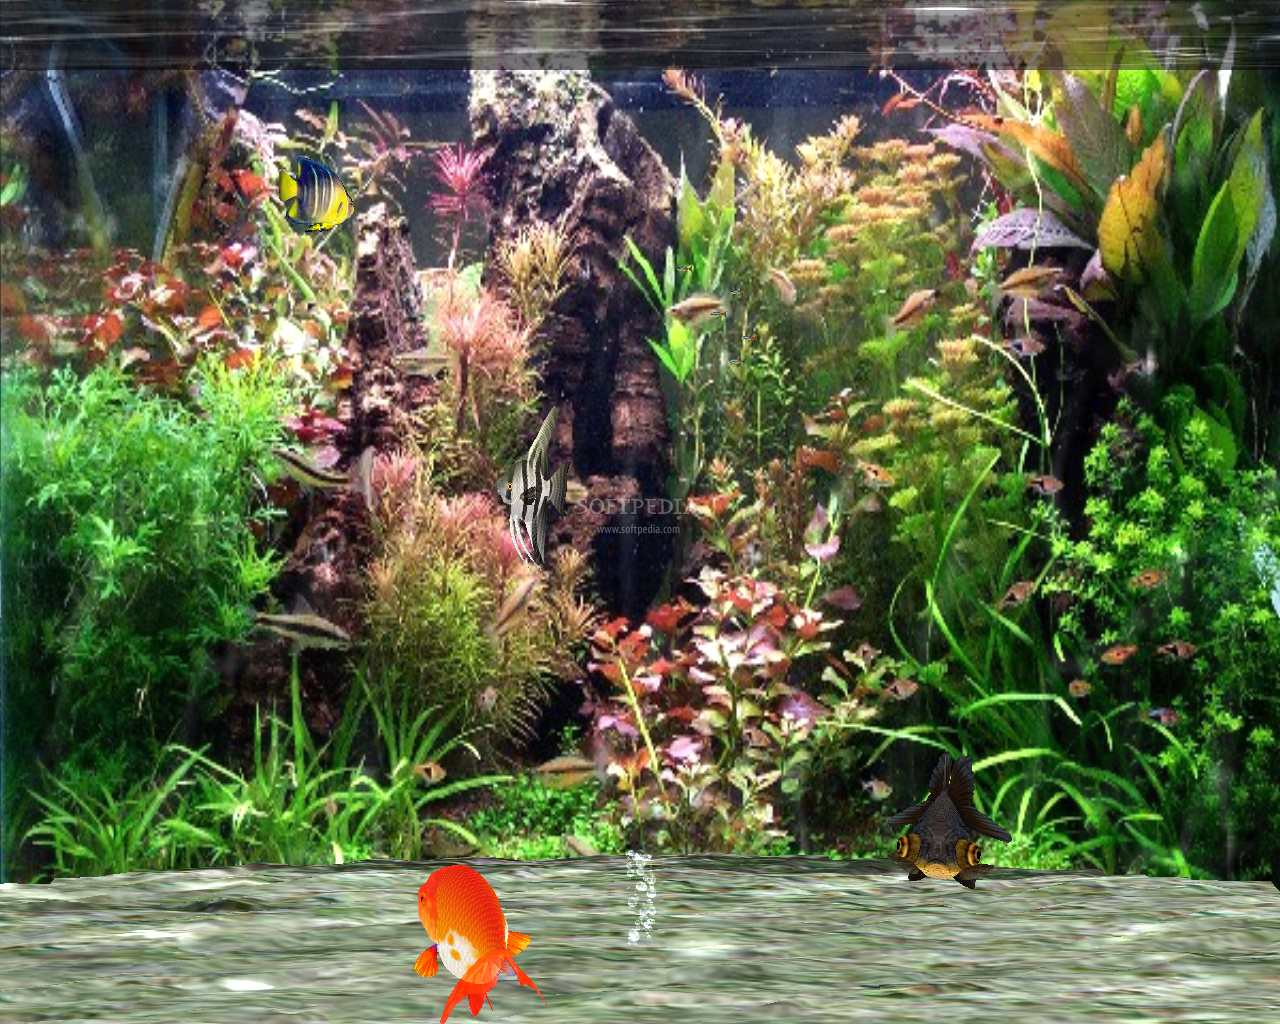 download freeware Screensaver Fantastic 3D Fish Aquarium